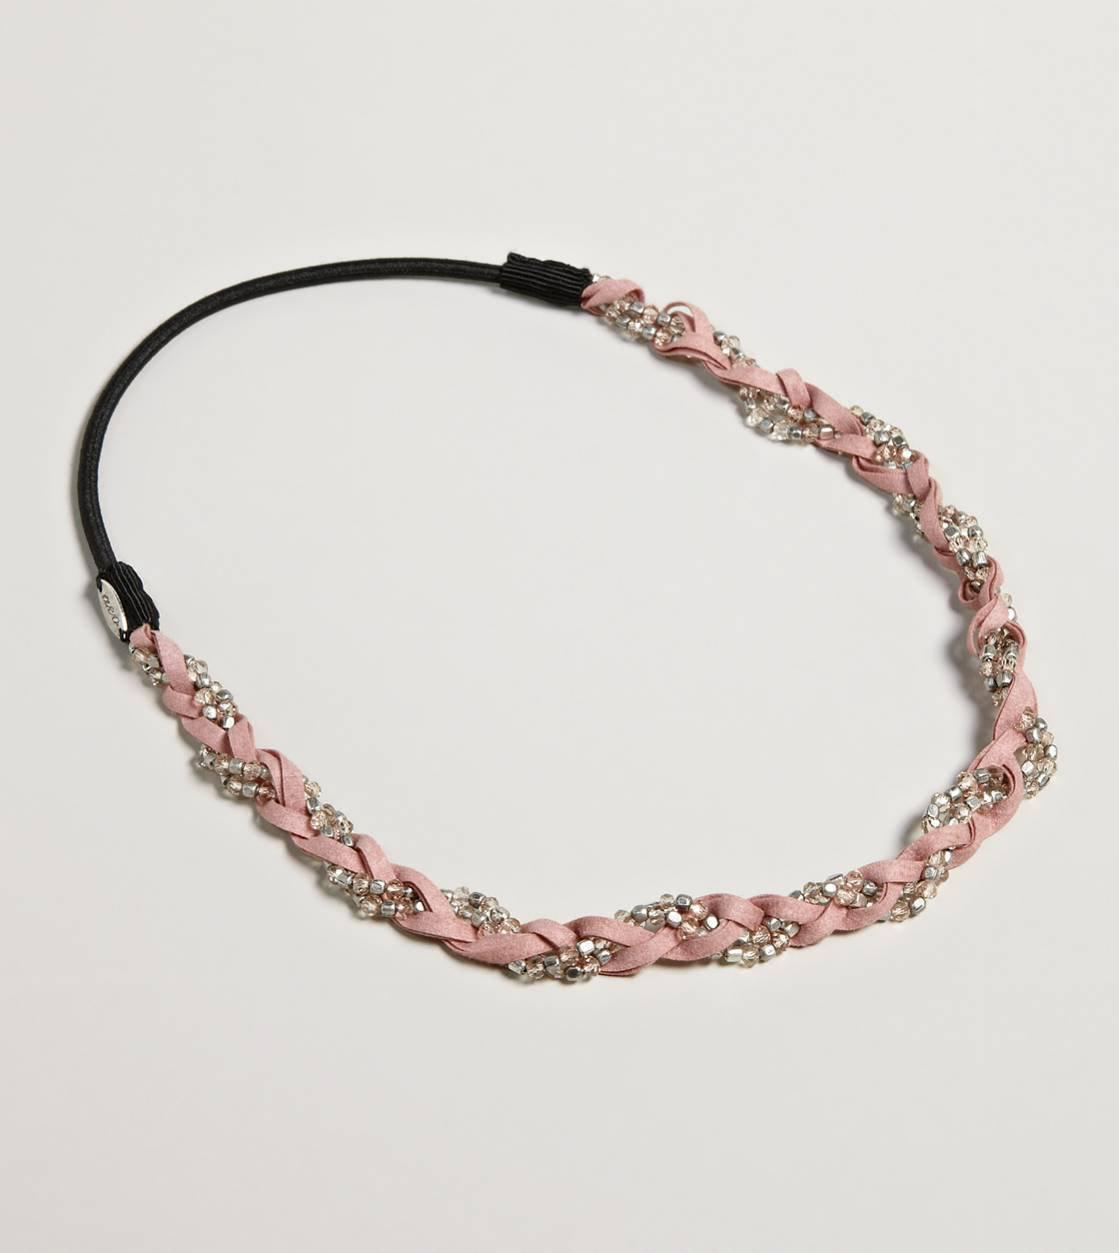 AEO Bead & Braid Headwrap | American Eagle Outfitters